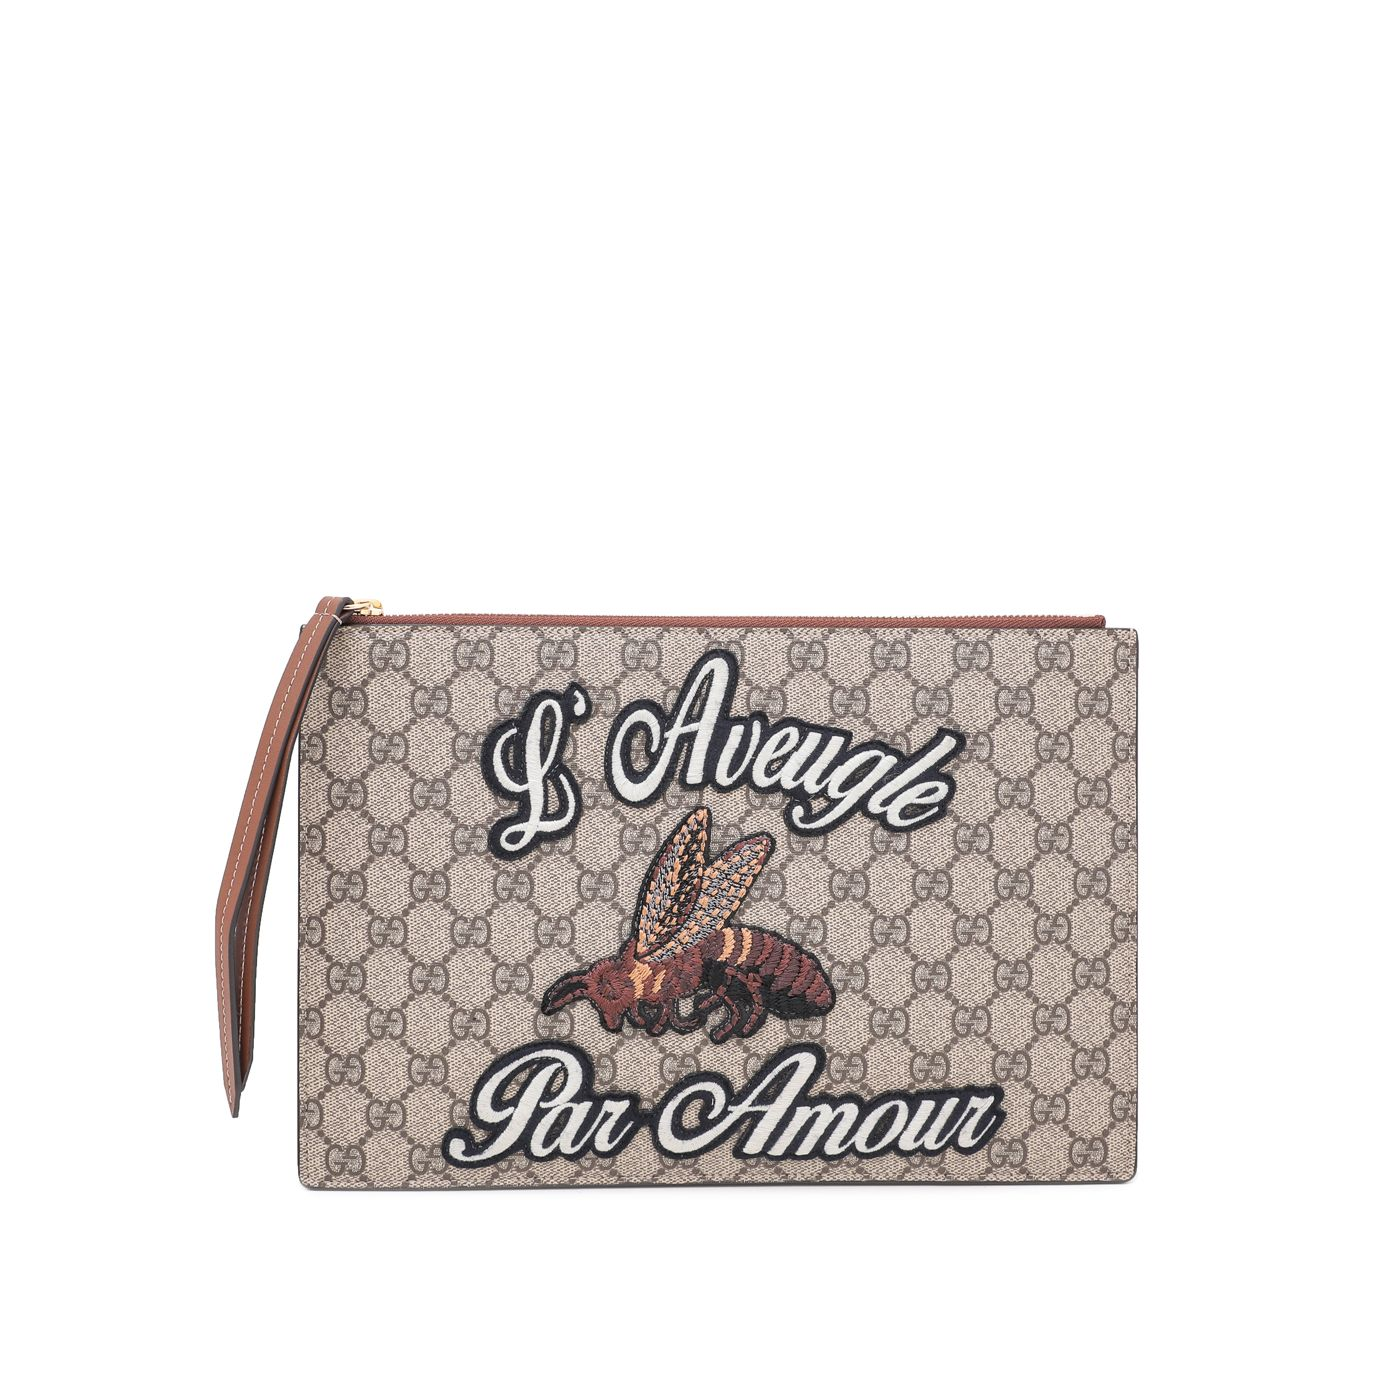 Gucci Bicolor GG Supreme Embroidered Blind For Love Pouch